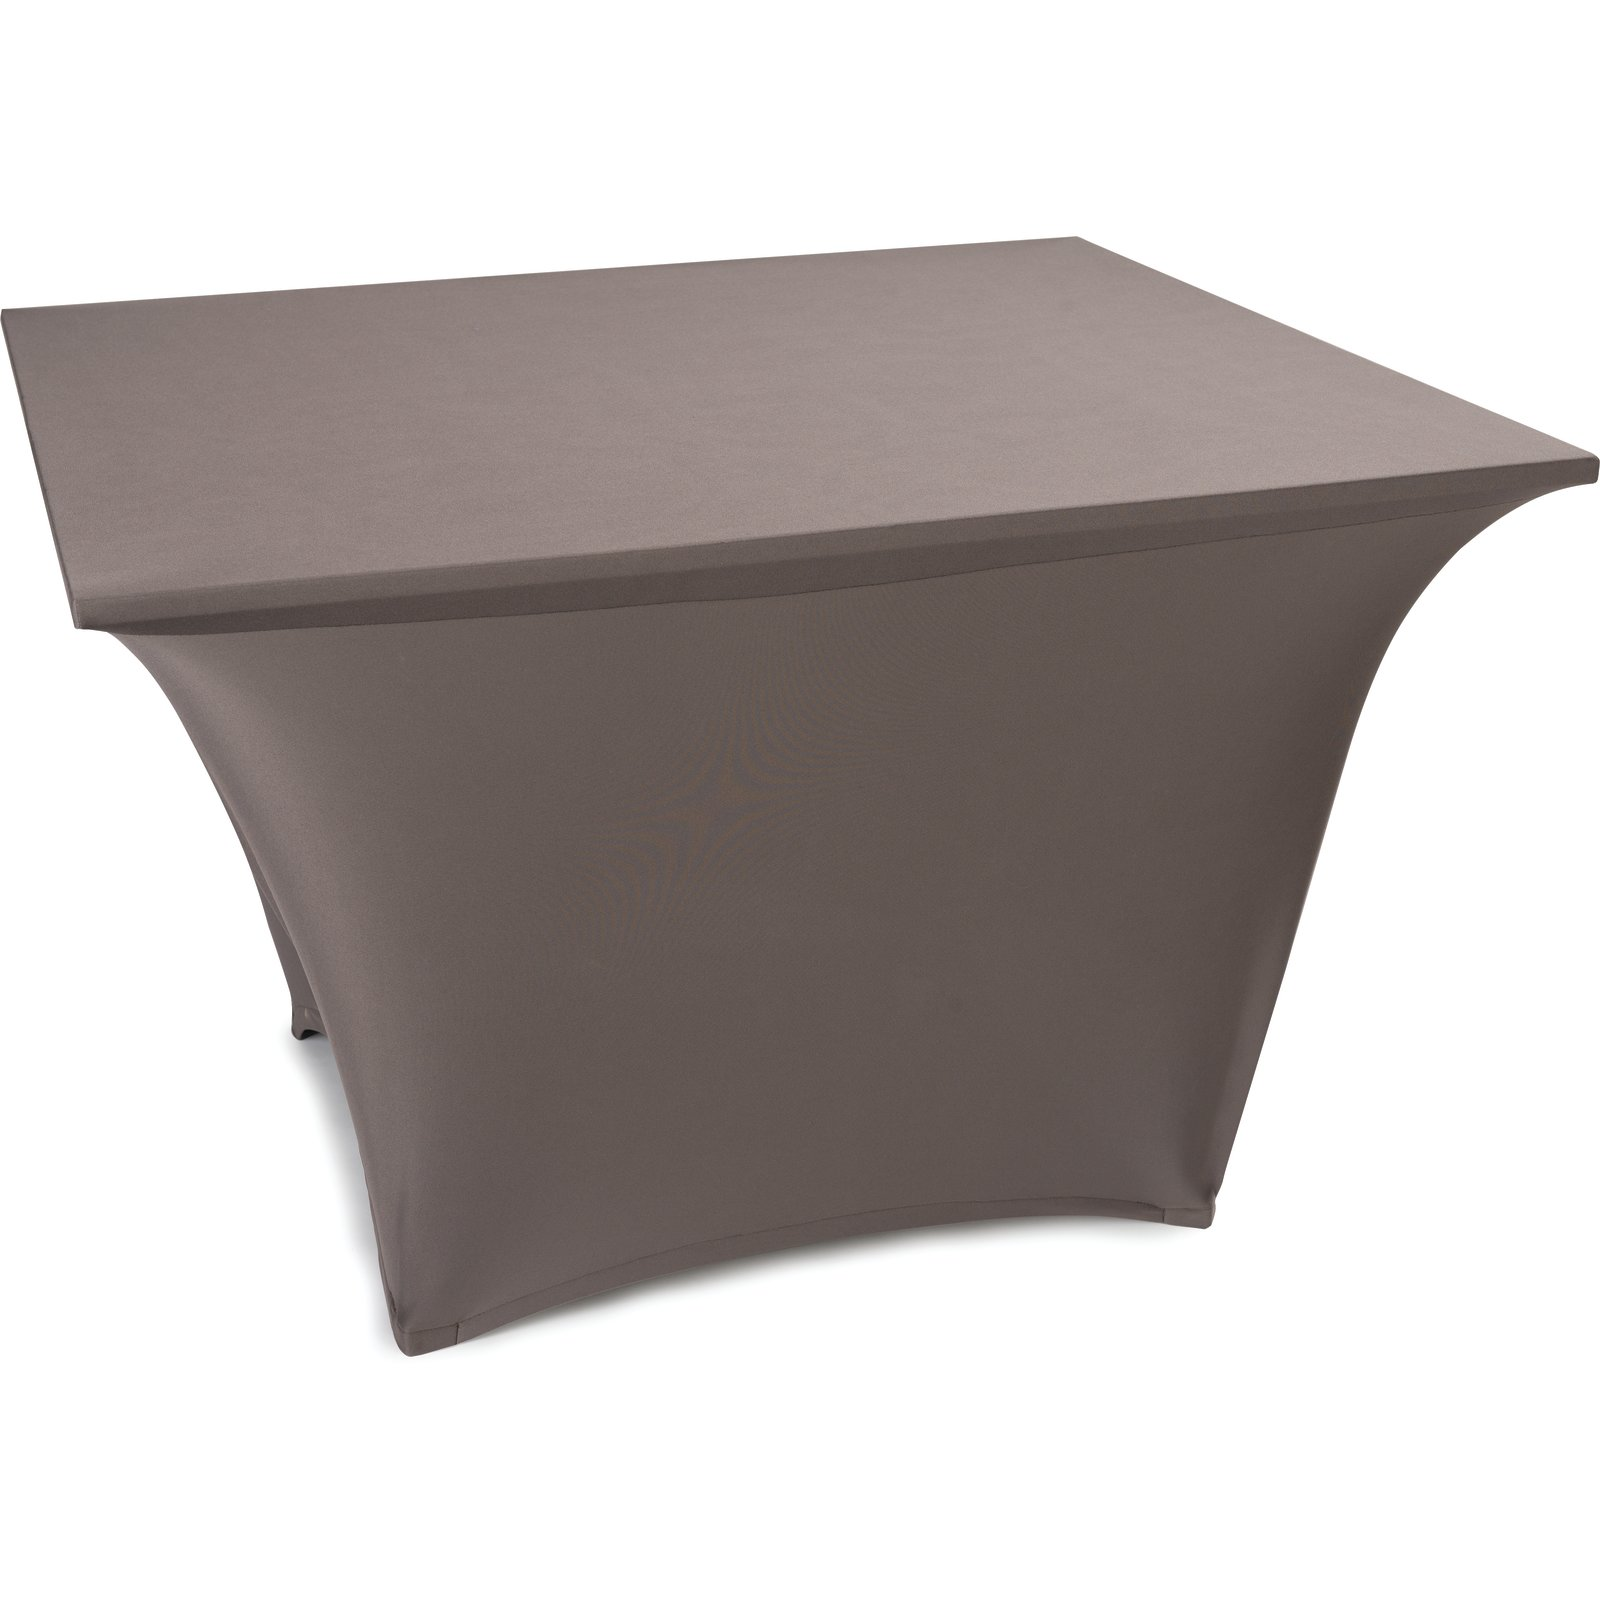 225 & EMB5026S5454010 - Embrace™ Square Stretch Table Cover 54\